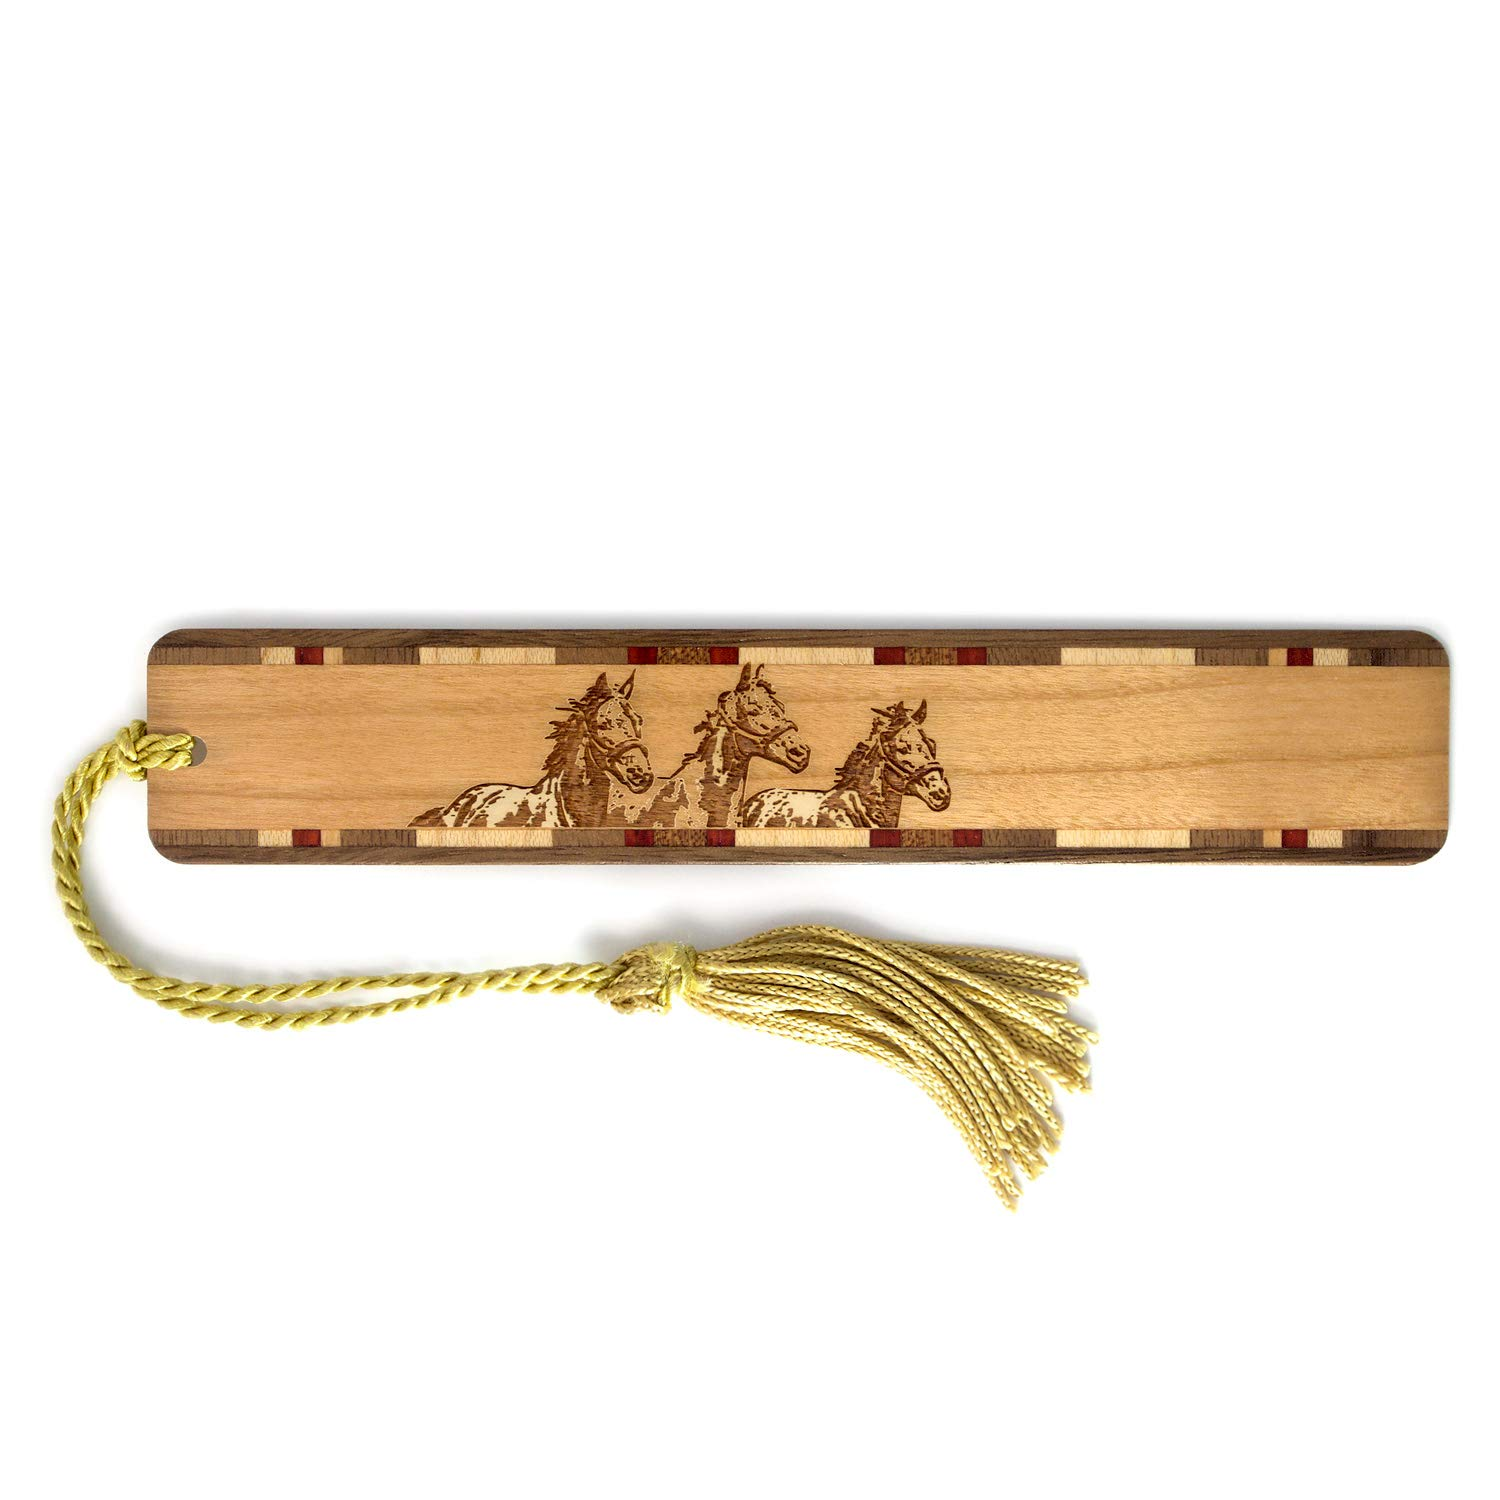 Horses Engraved Wooden Bookmark with Tassel - Search B071GS9Z3Z for Personalized version.